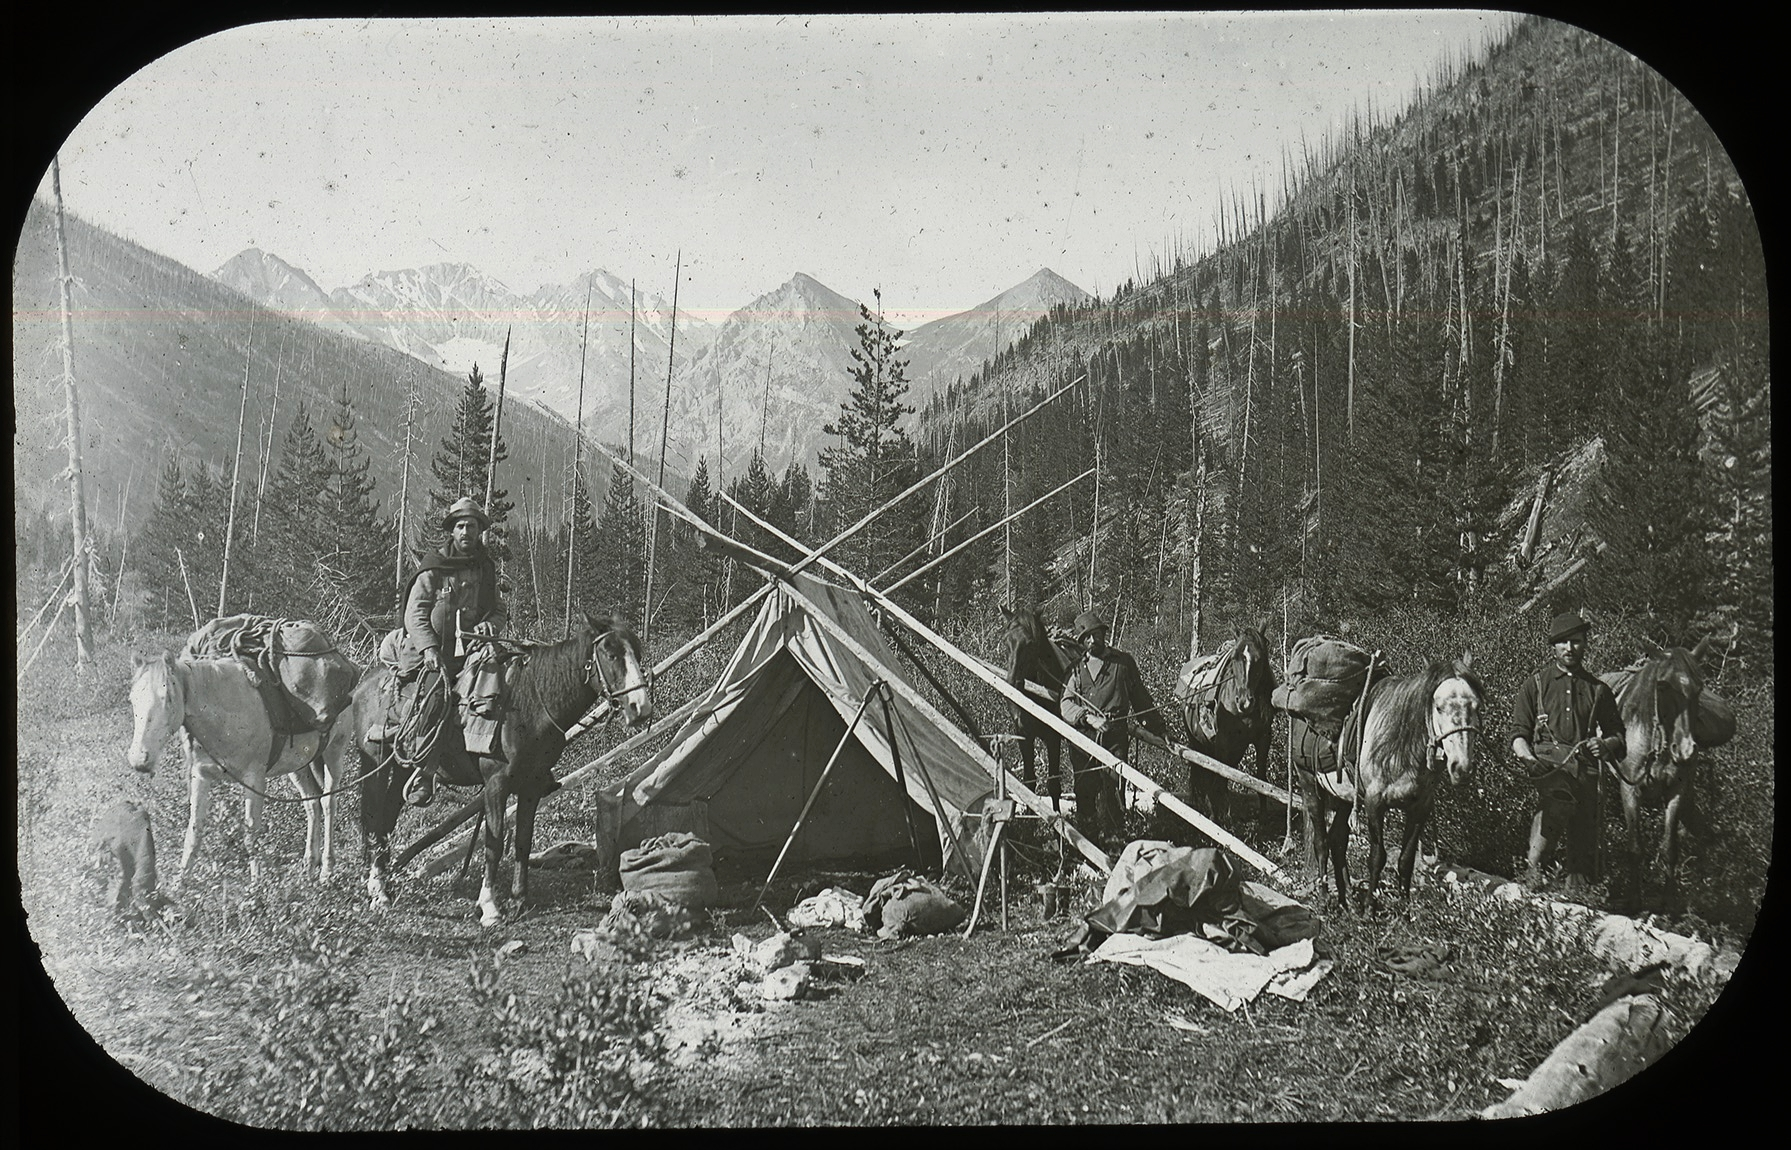 Camp in the Canadian Rockies